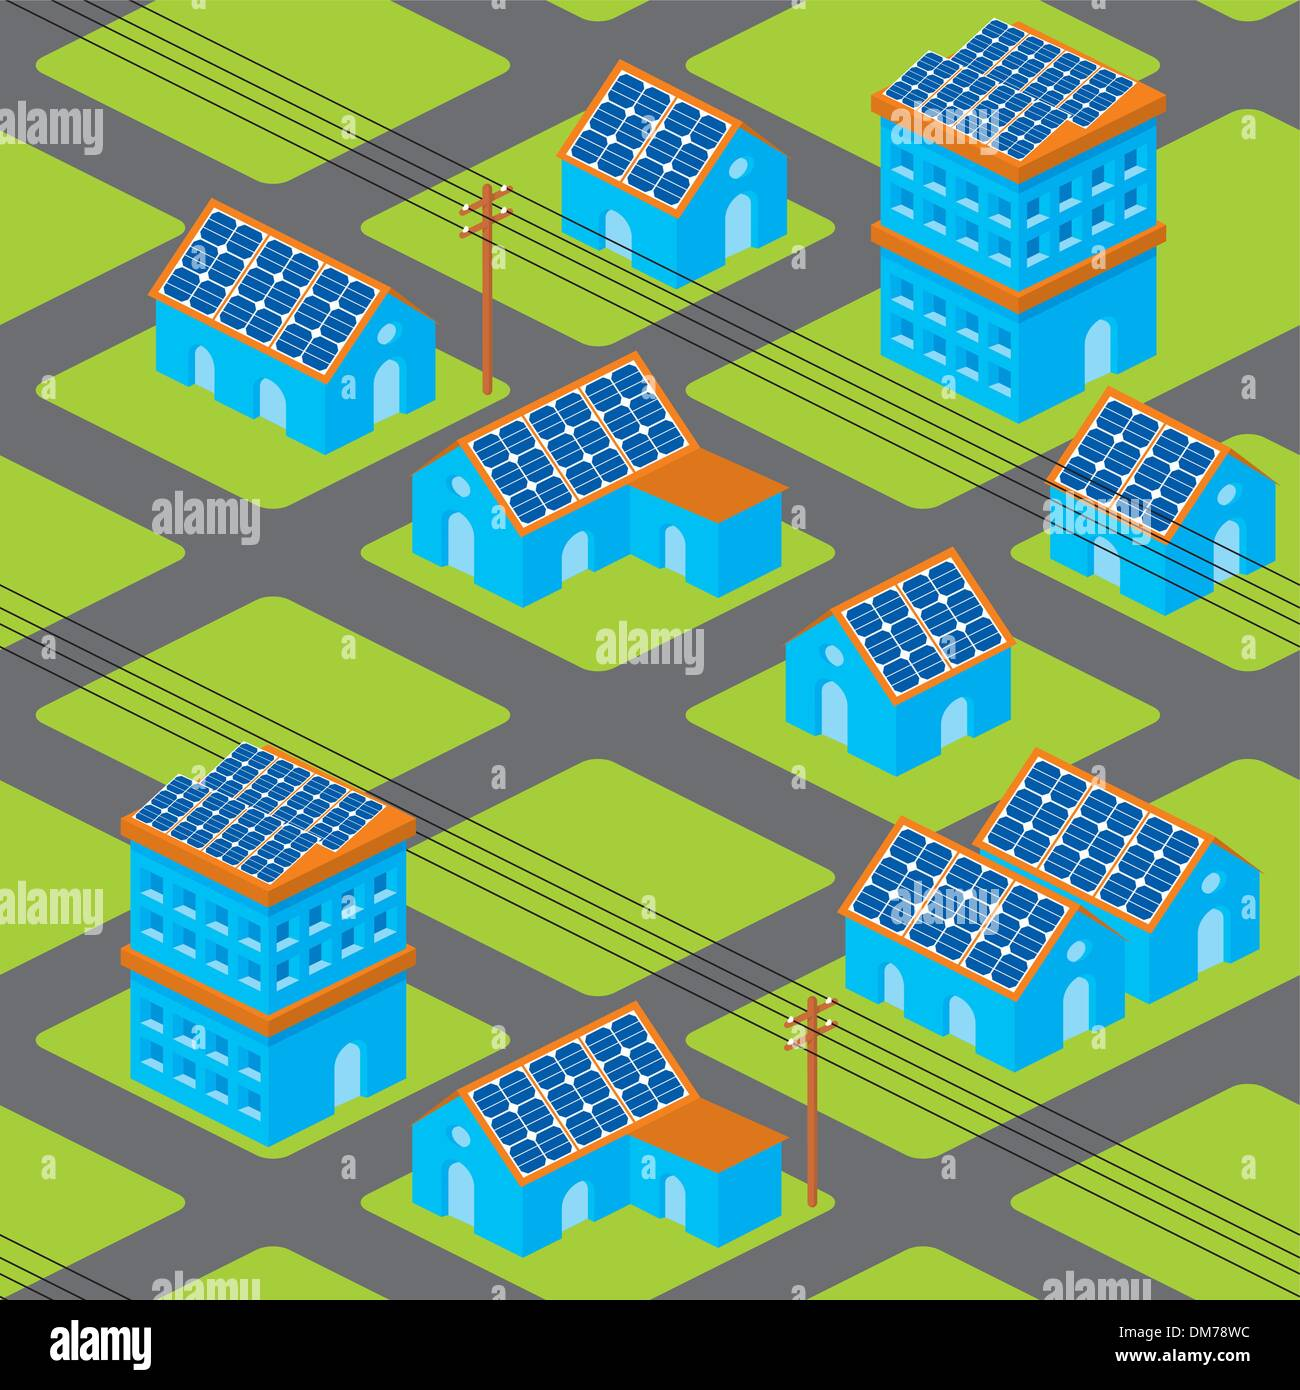 Solar houses pattern - Stock Vector